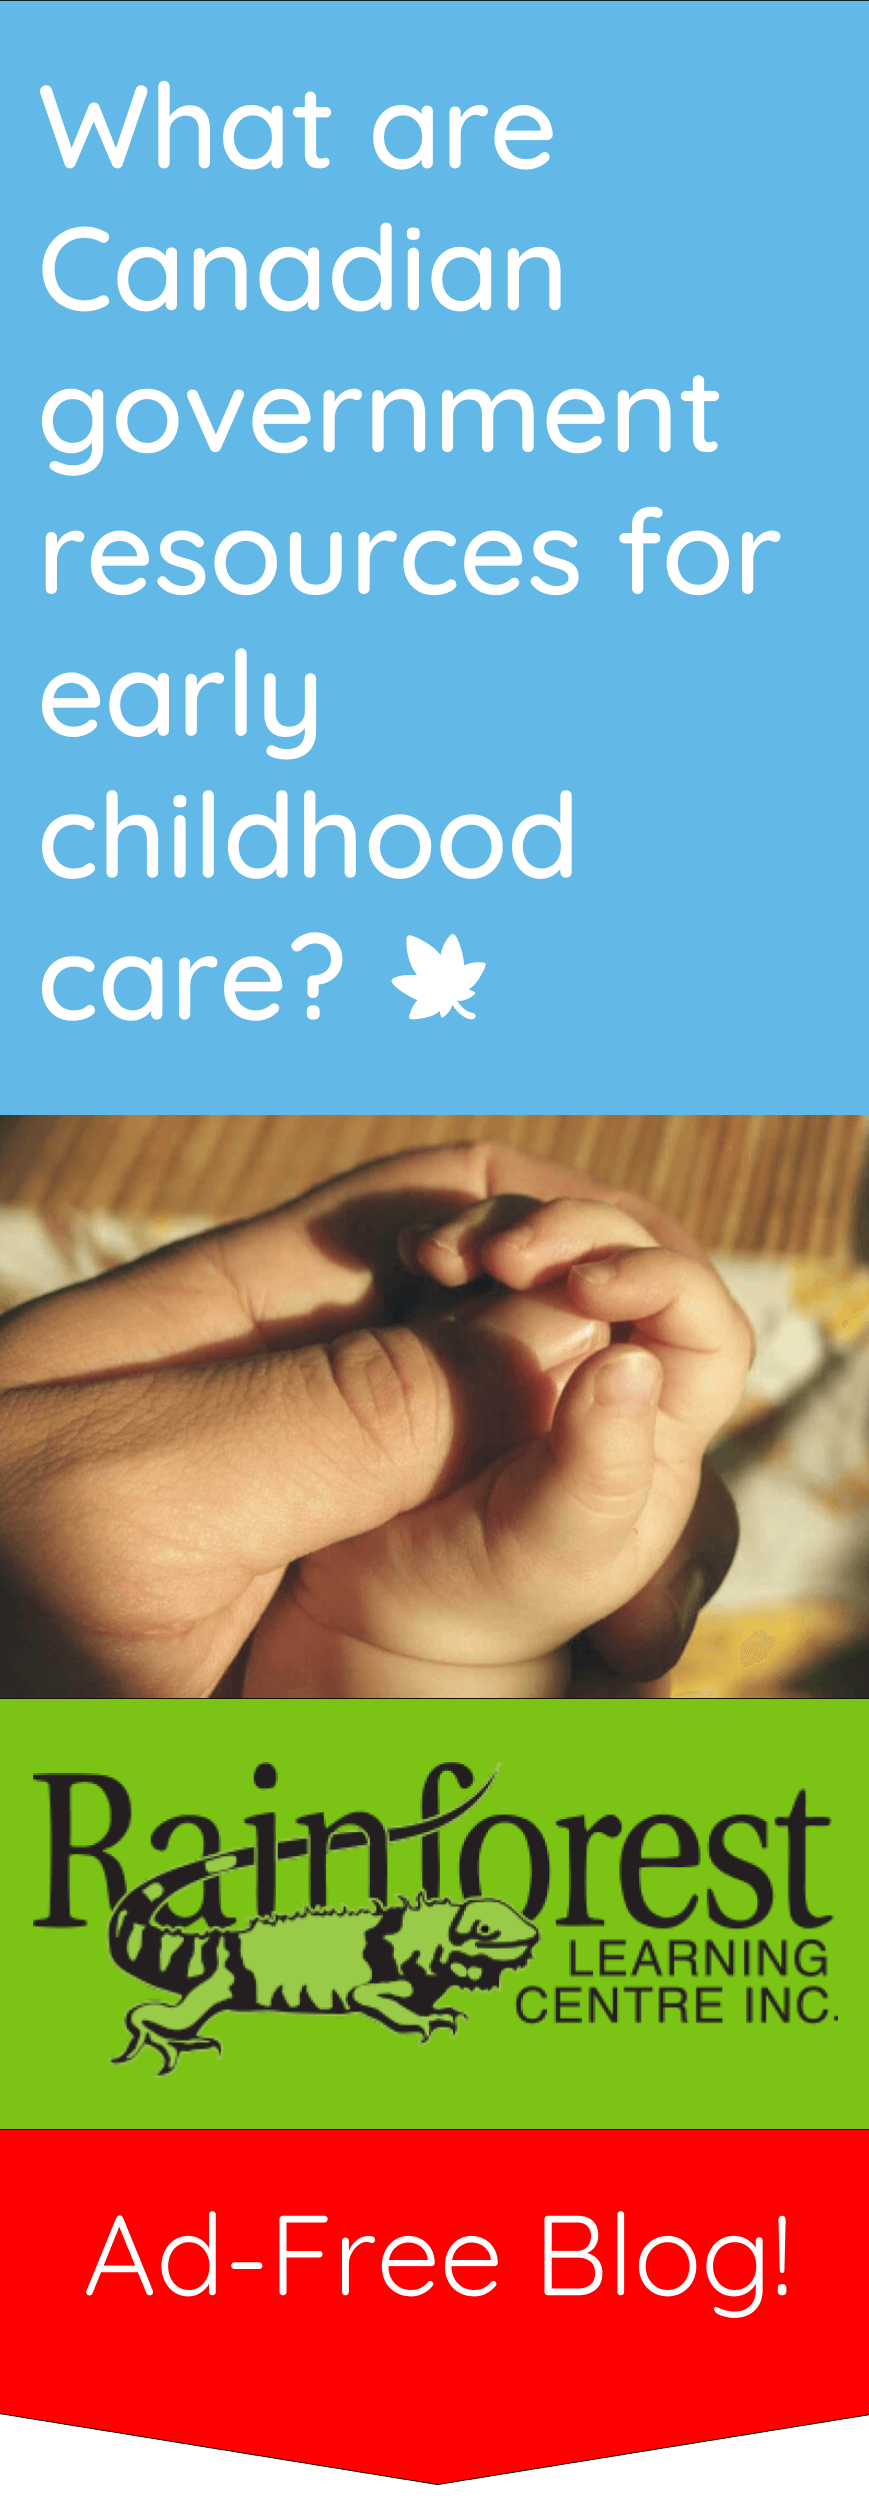 Canadian government resources for childcare article - pinterest image